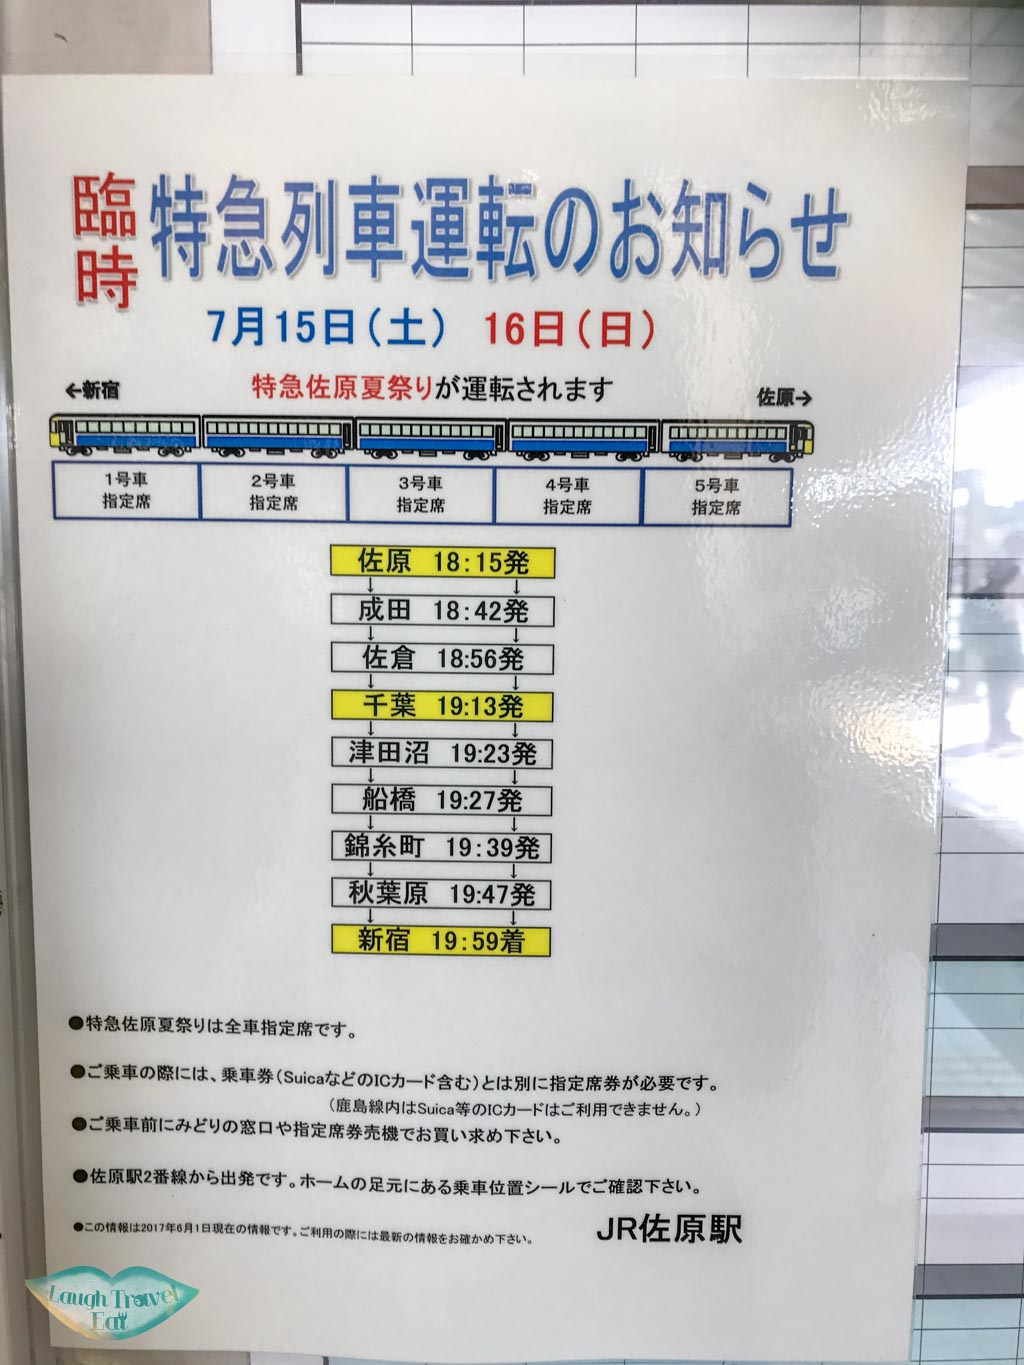 sawara station chiba special train schedule japan